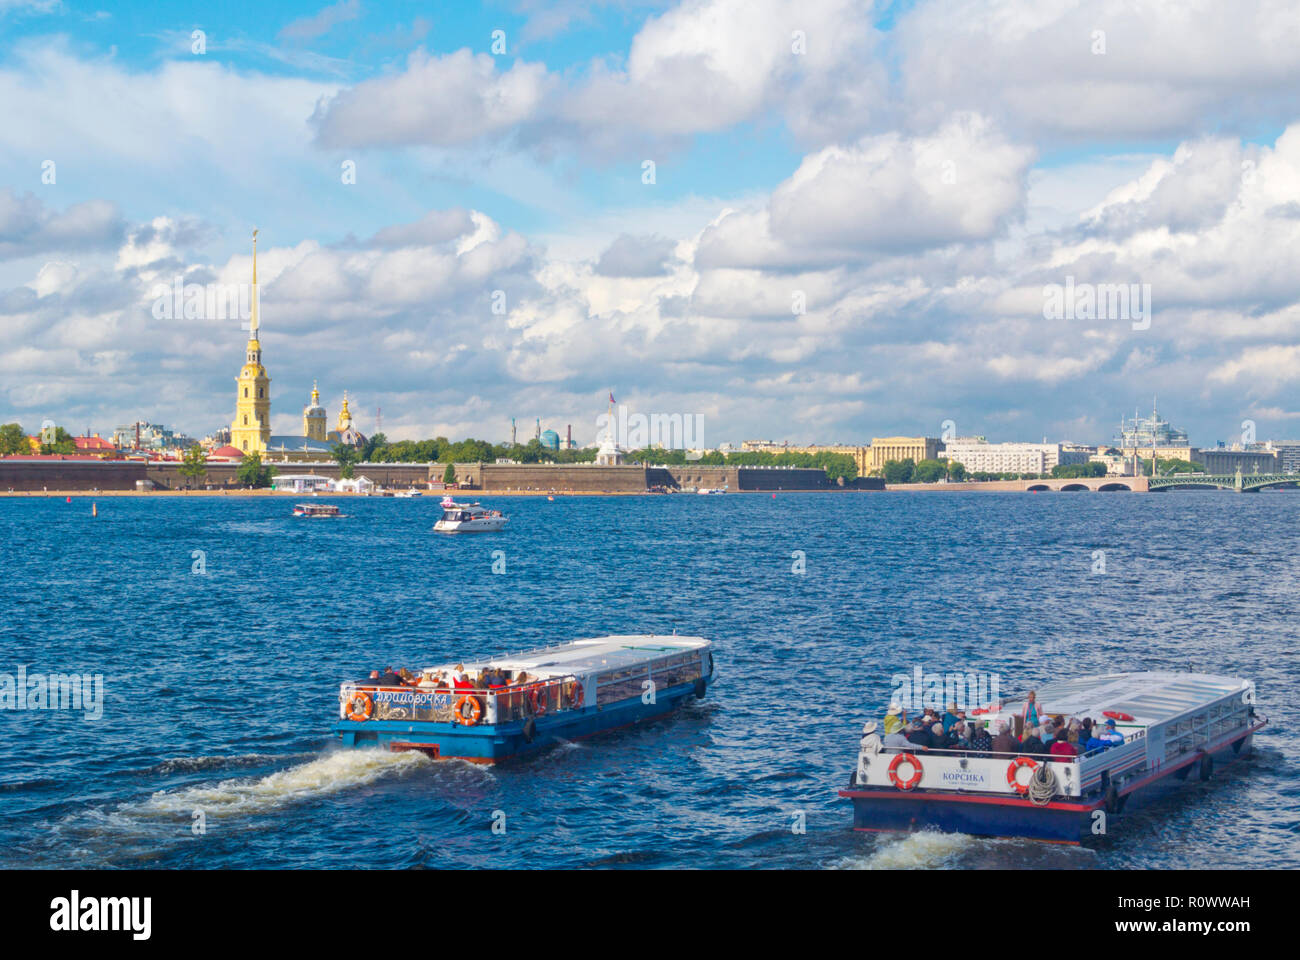 River Neva, in front of Peter and Paul Fortress, Saint Petersburg, Russia - Stock Image